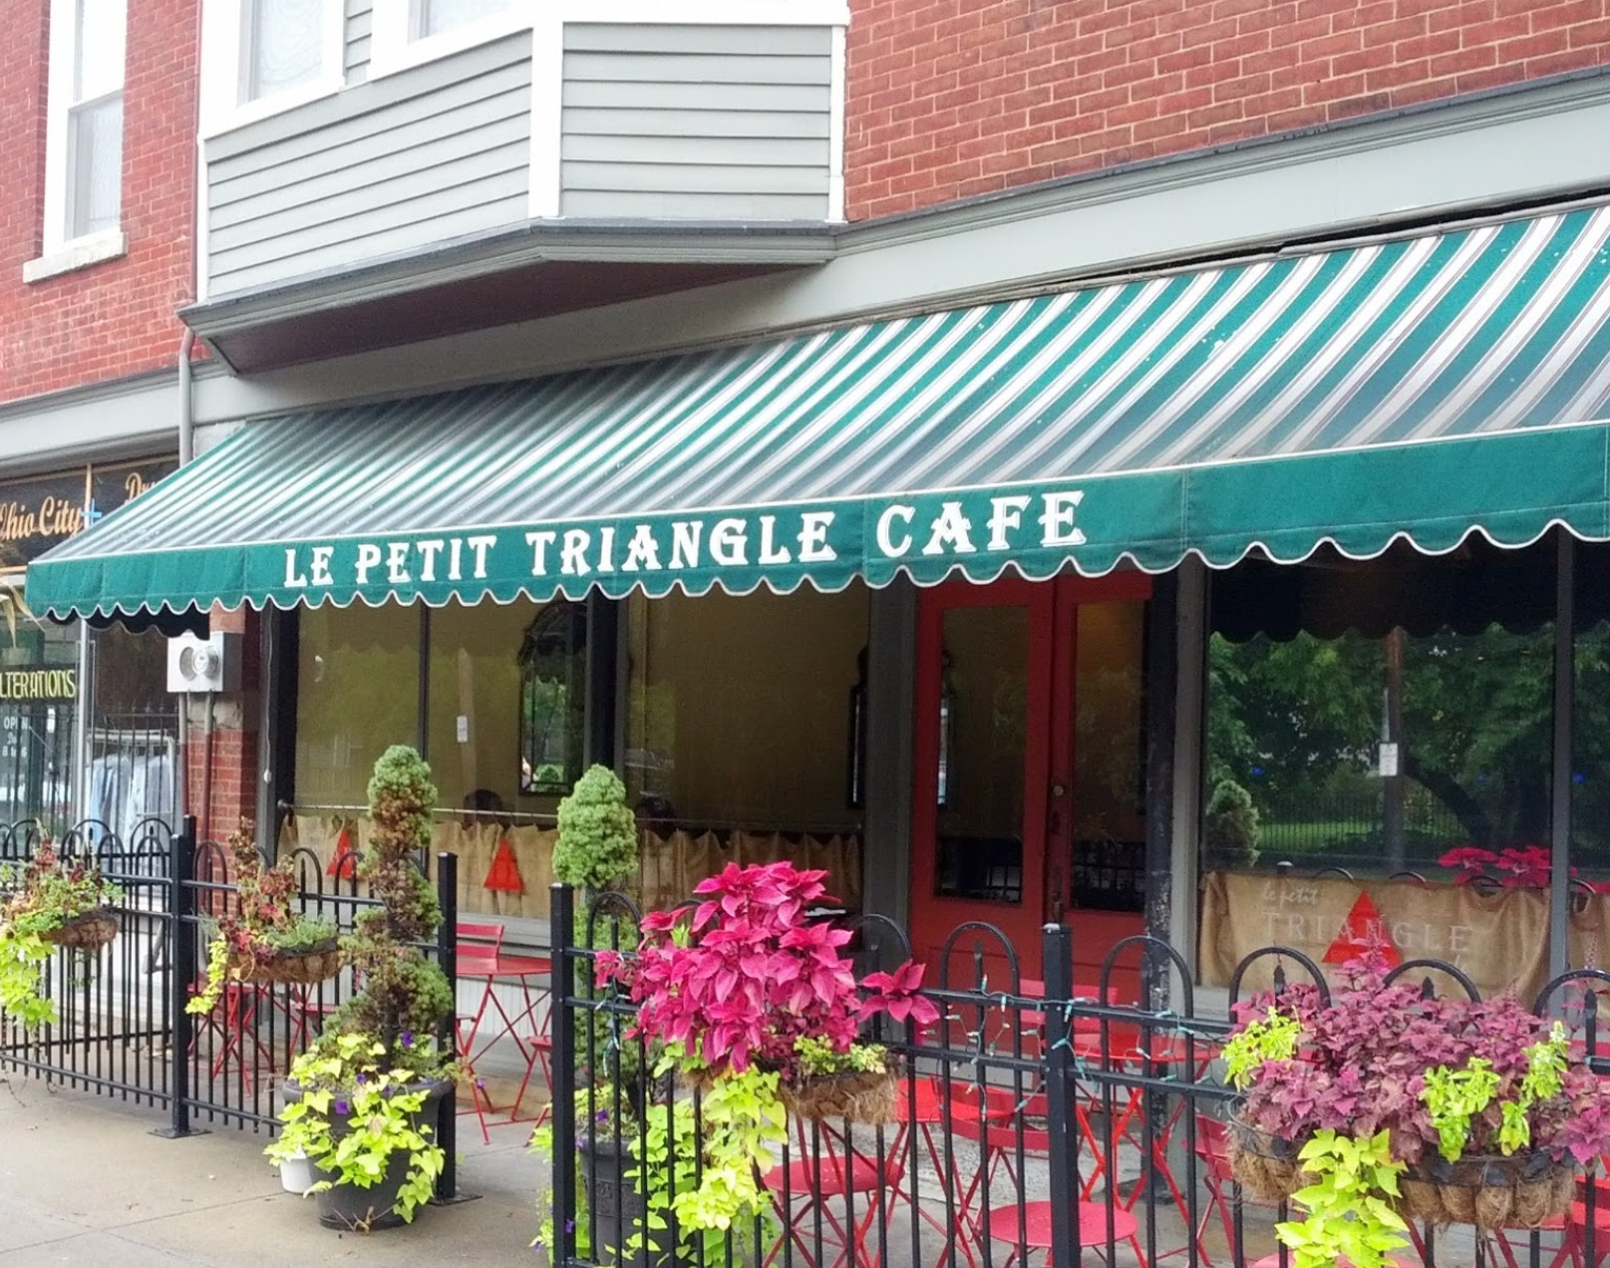 Le Petit Triangle Cafe - Fulton Road - Ohio City